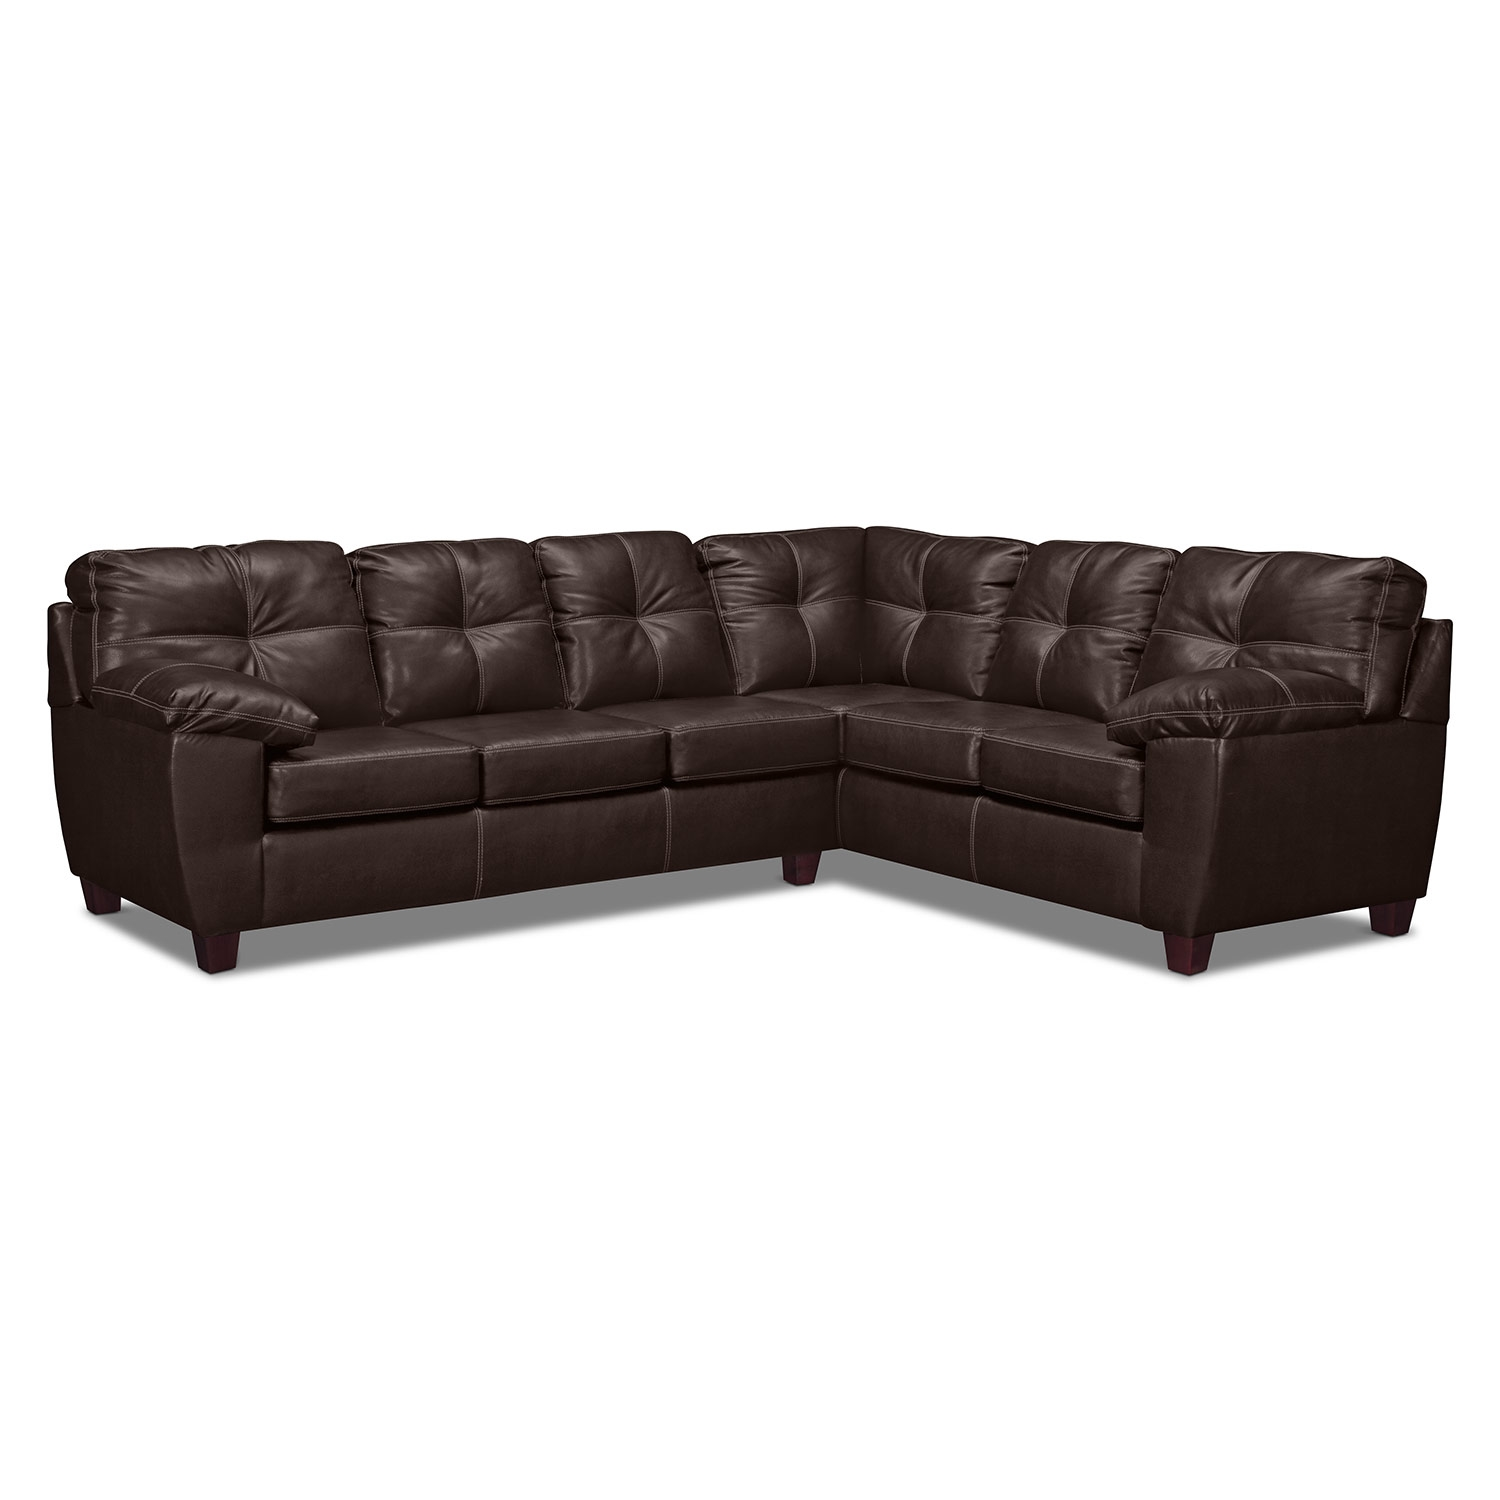 Great sofa sectionals for home interior design with leather sectional sofa and sectional sleeper sofa